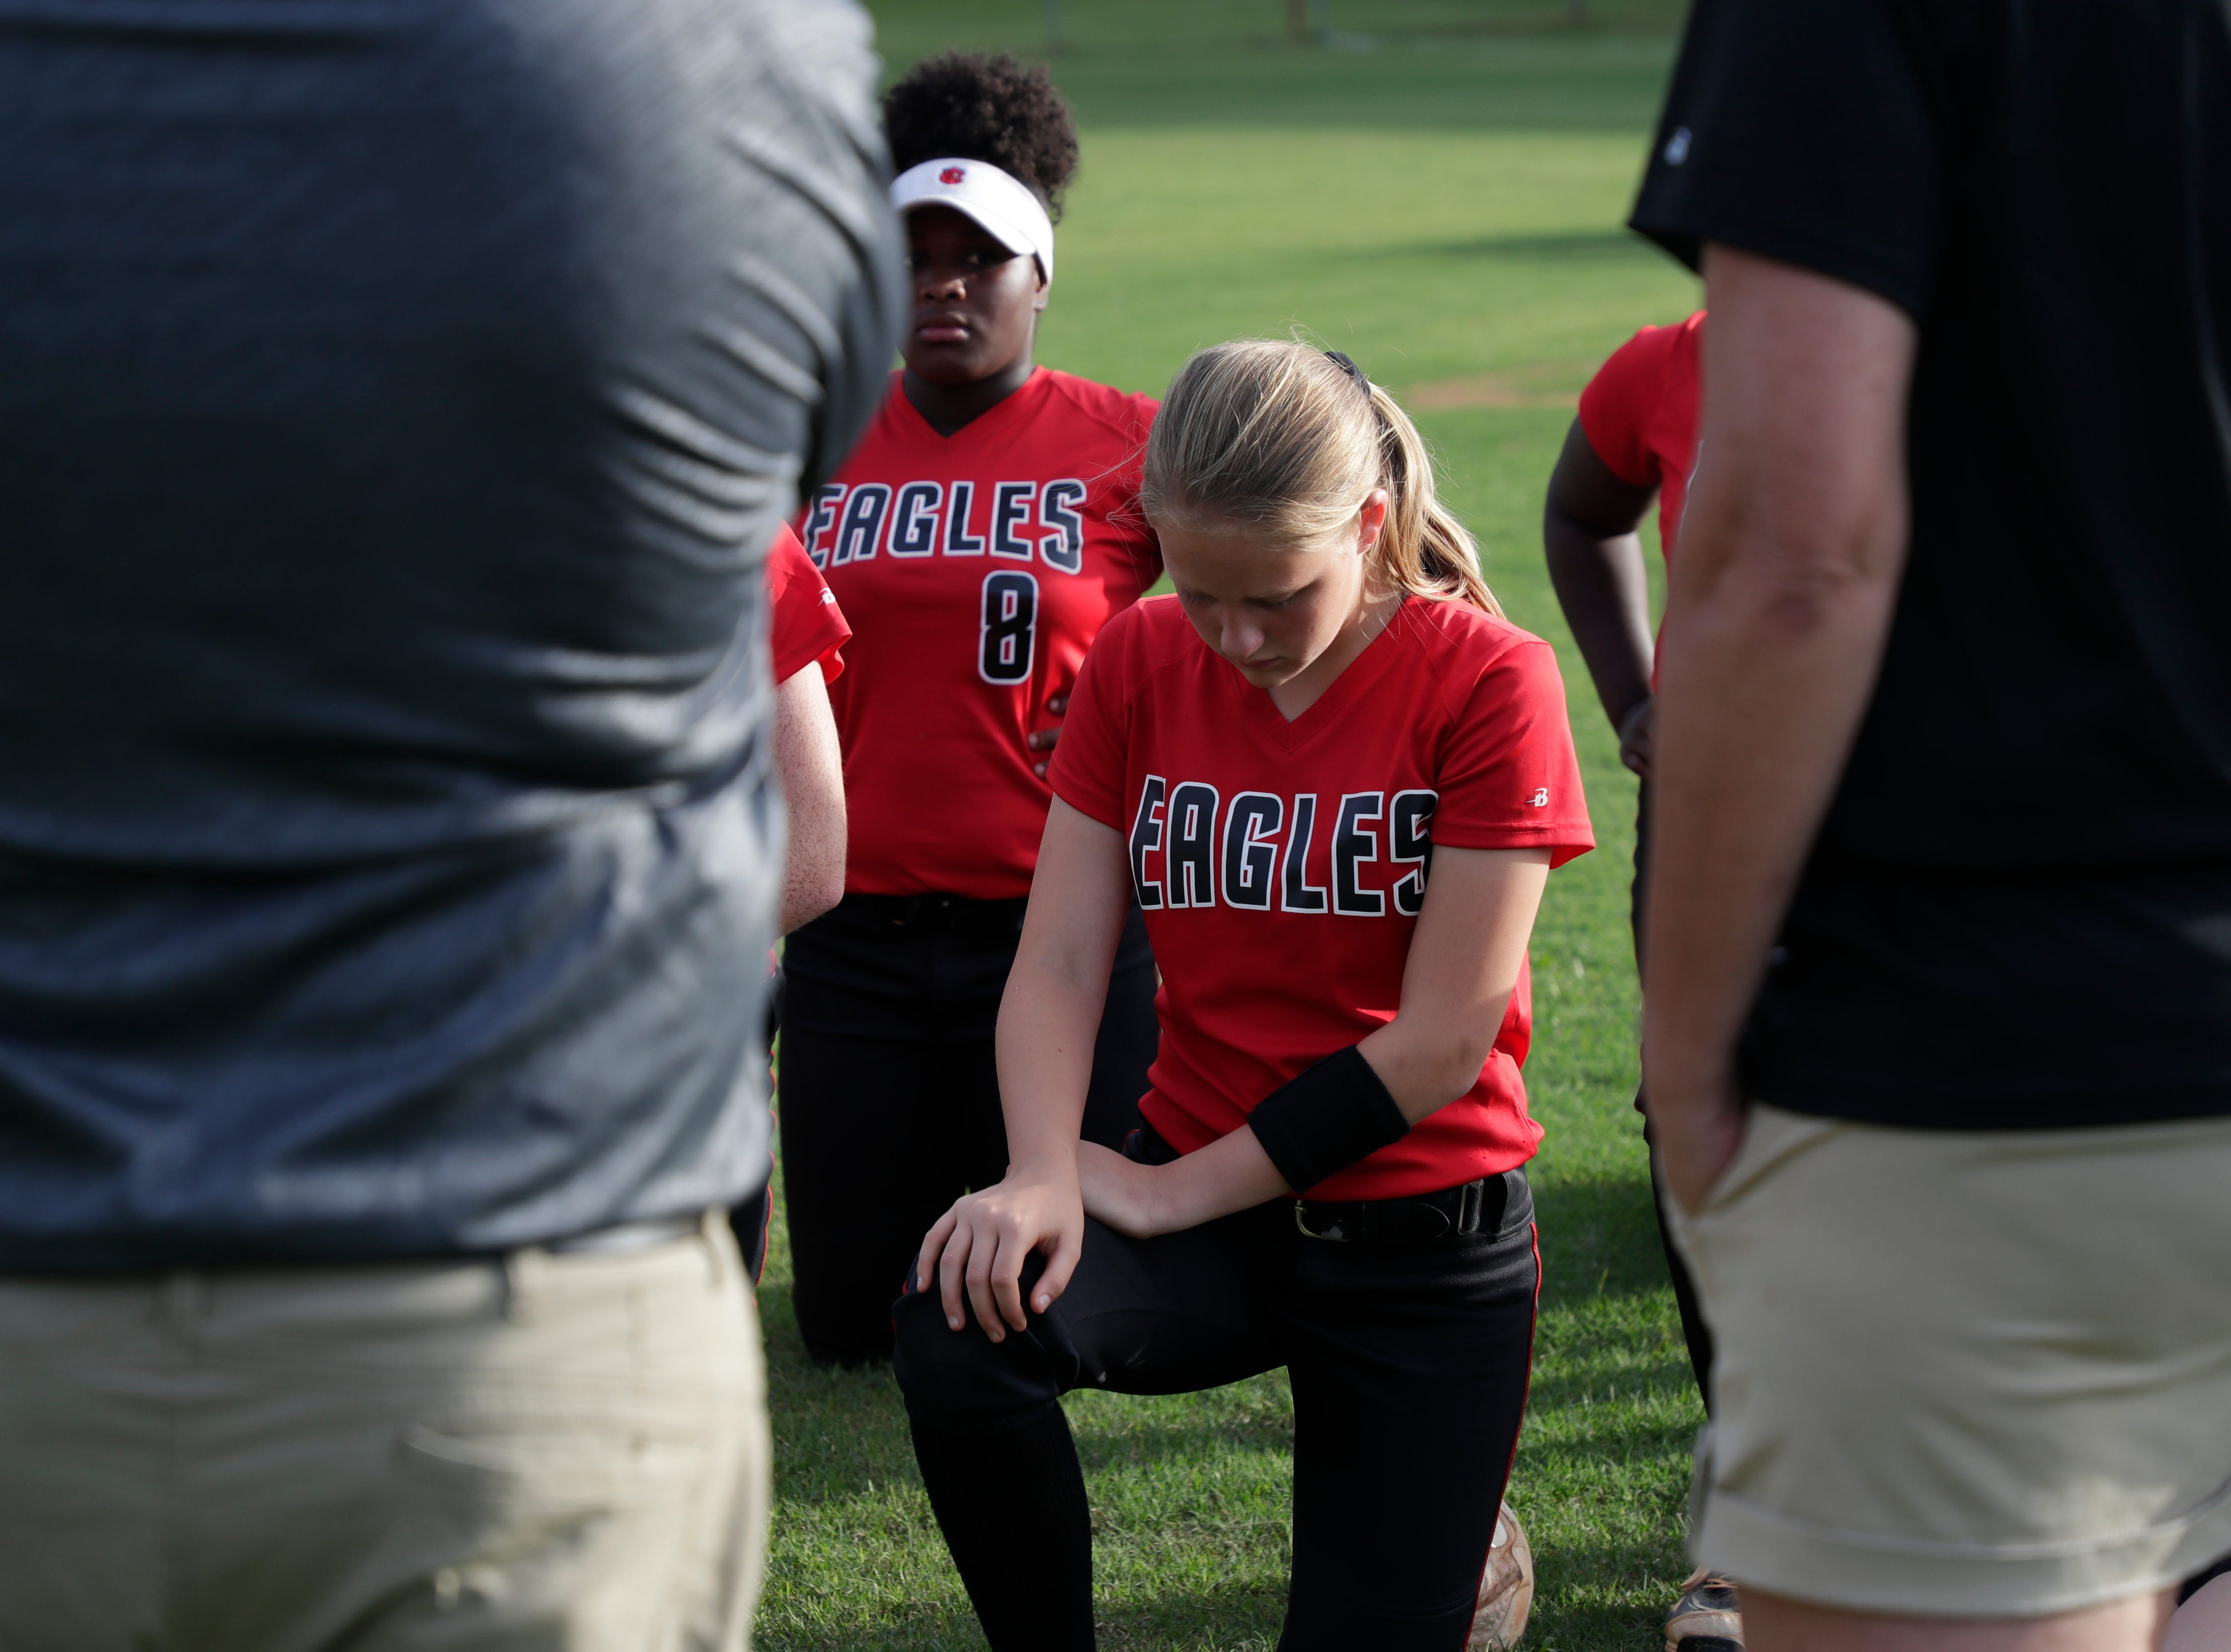 North Florida Christian's Emma Gorham (3) puts her head down as the team huddles after losing the 1-3A regional final game 16 to 11 to University Christian at NFC Tuesday, May 14, 2019.